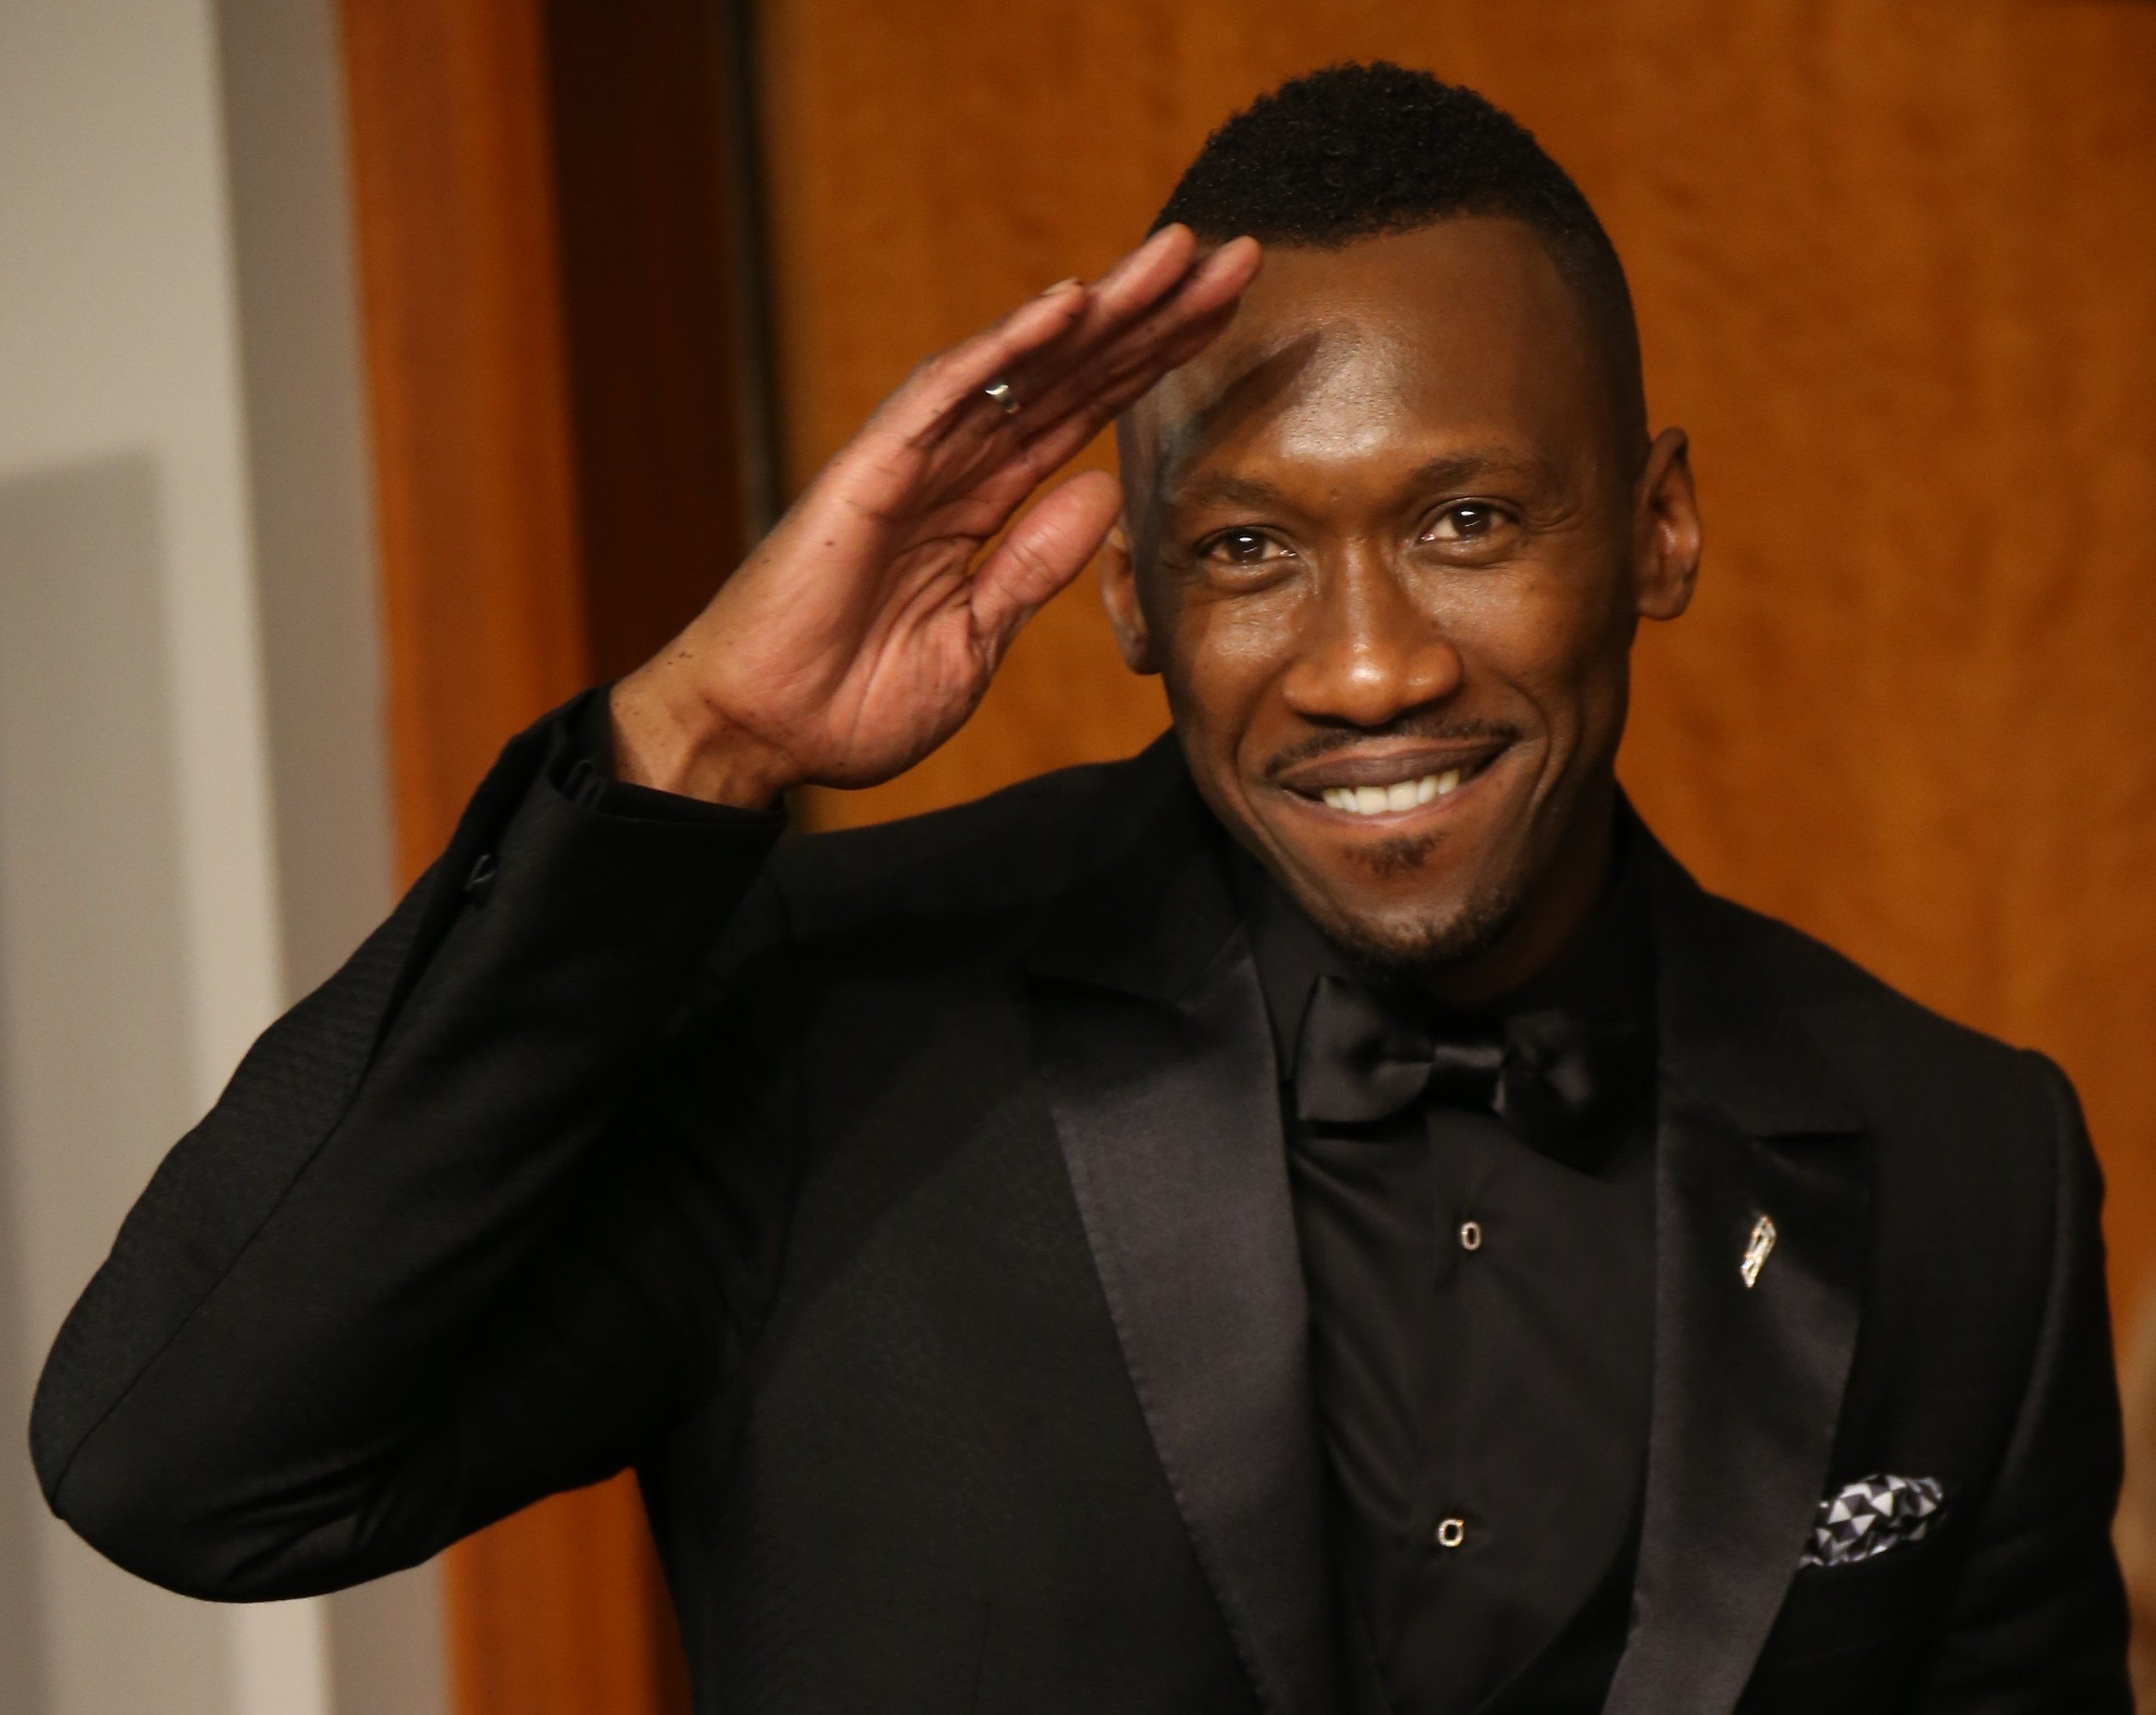 So It Turns Out That Oscar Winner Mahershala Ali Used To Be A